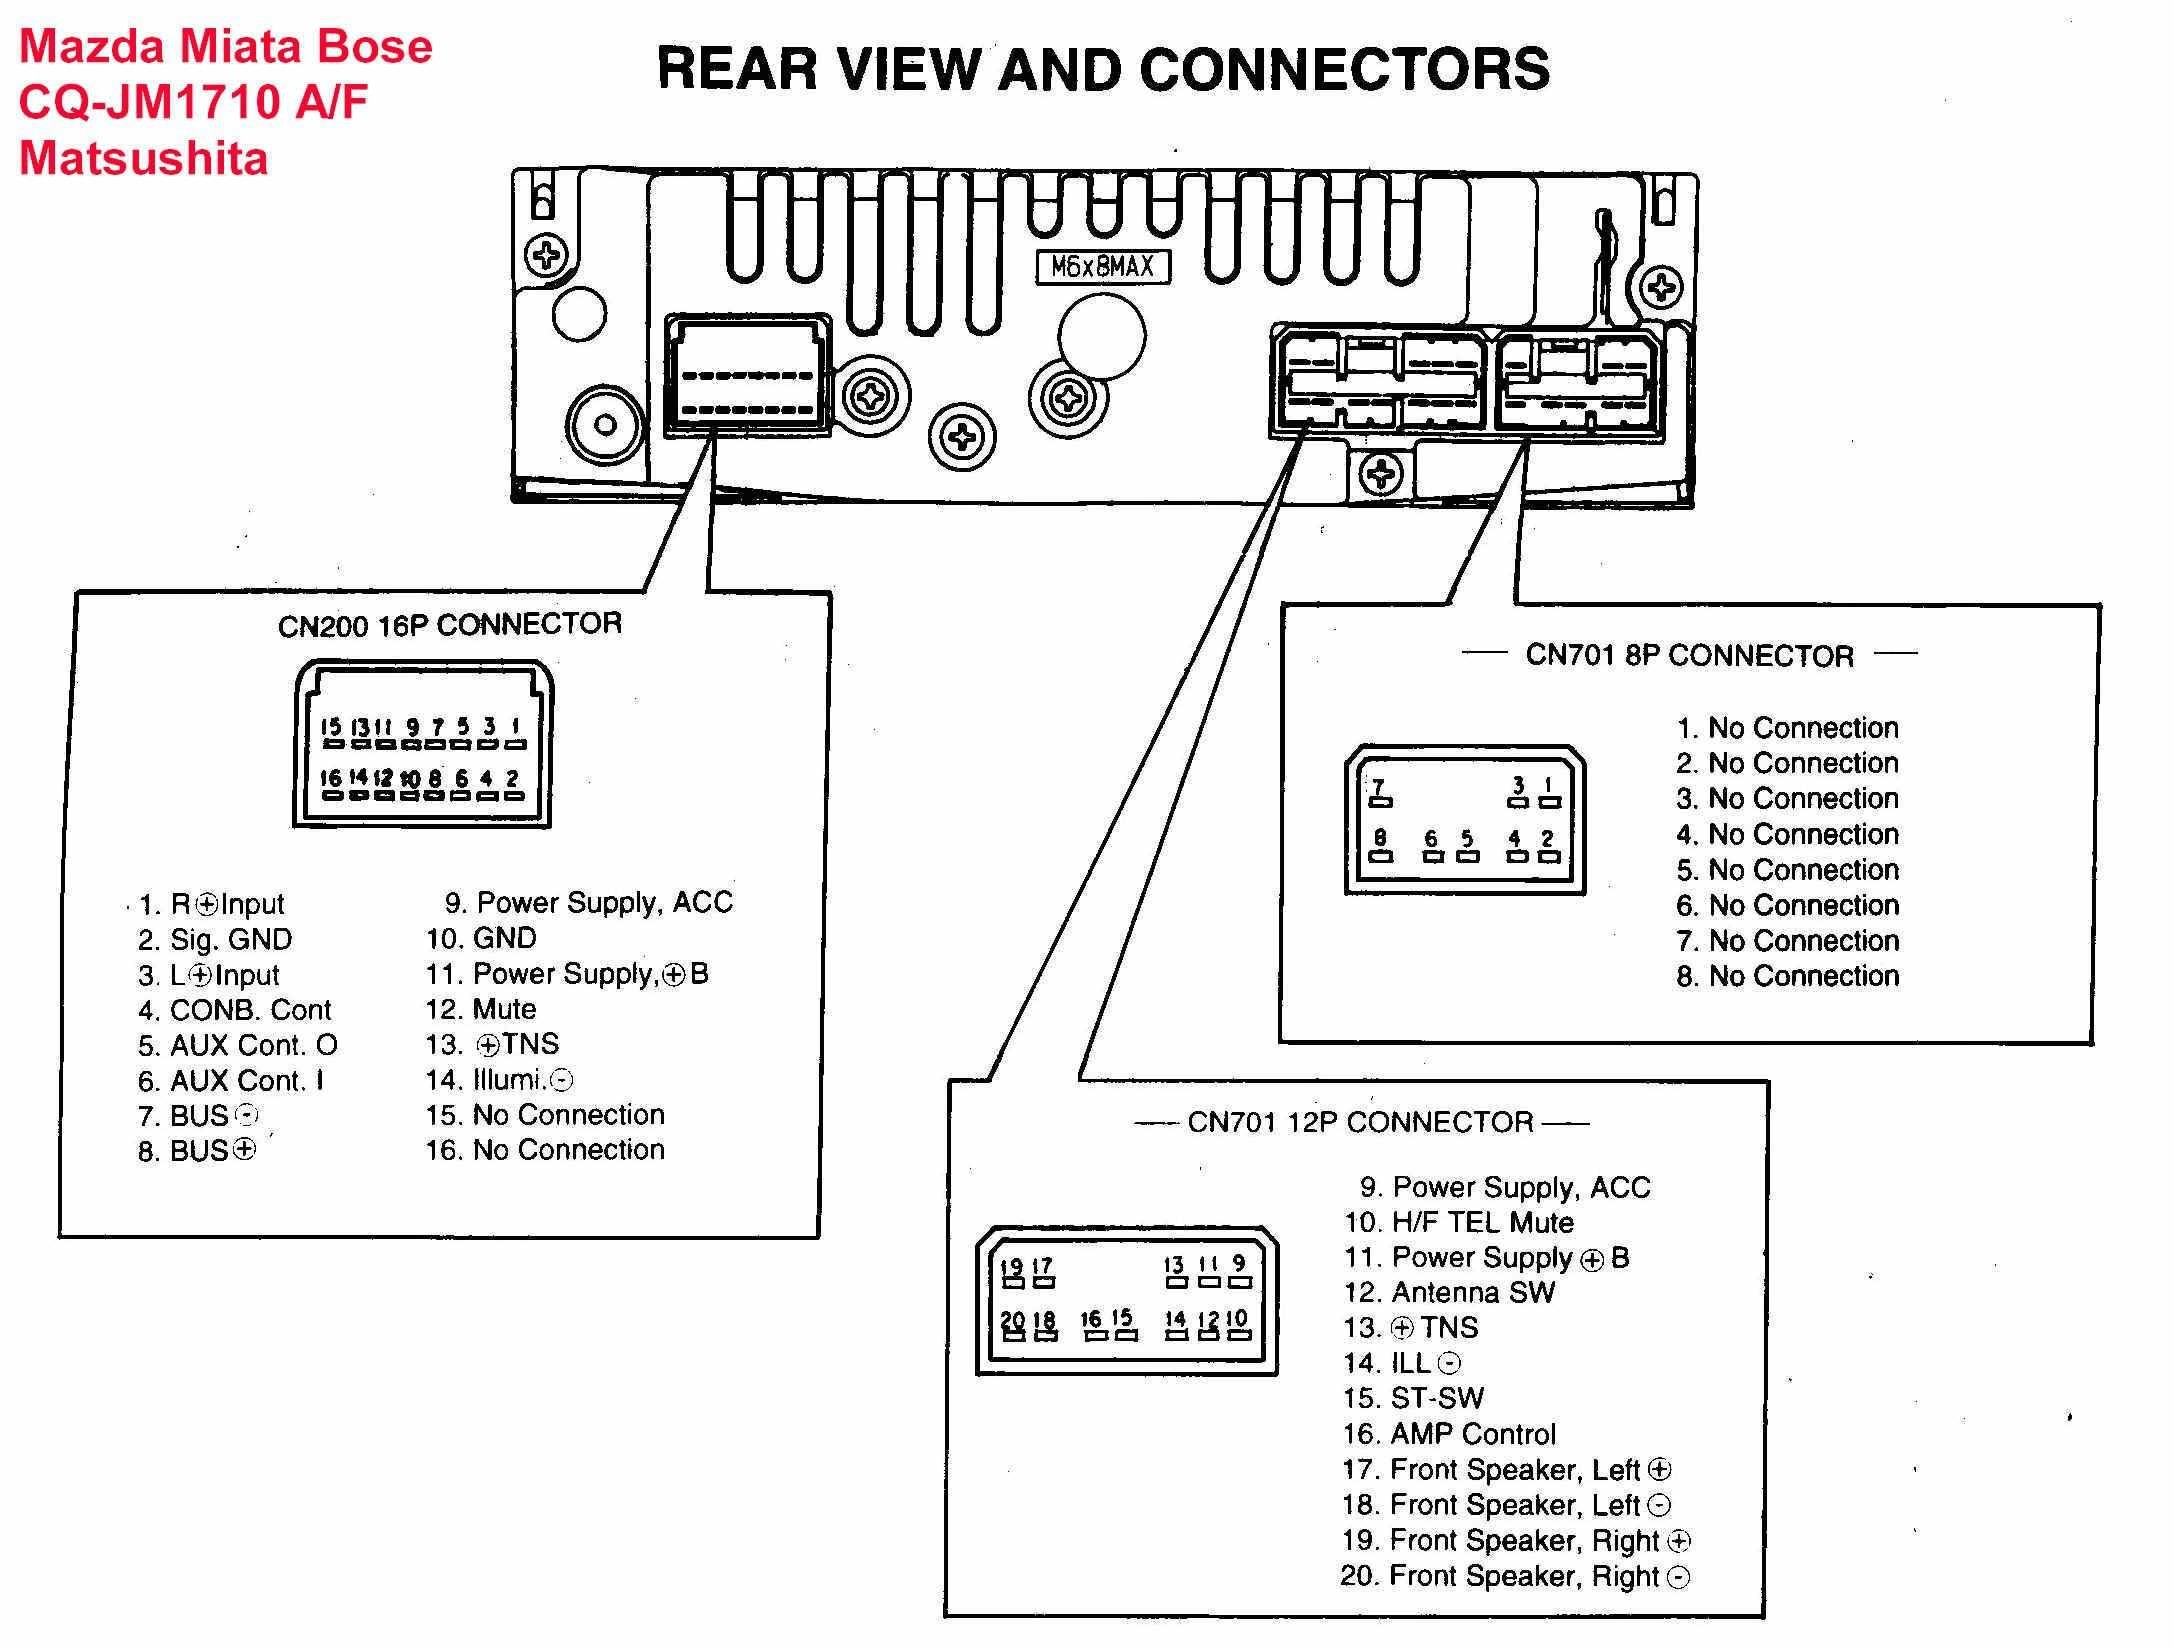 2002 Nissan Sentra Engine Diagram 2012 Nissan Maxima Bose Wiring Another Blog About Wiring Diagram • Of 2002 Nissan Sentra Engine Diagram